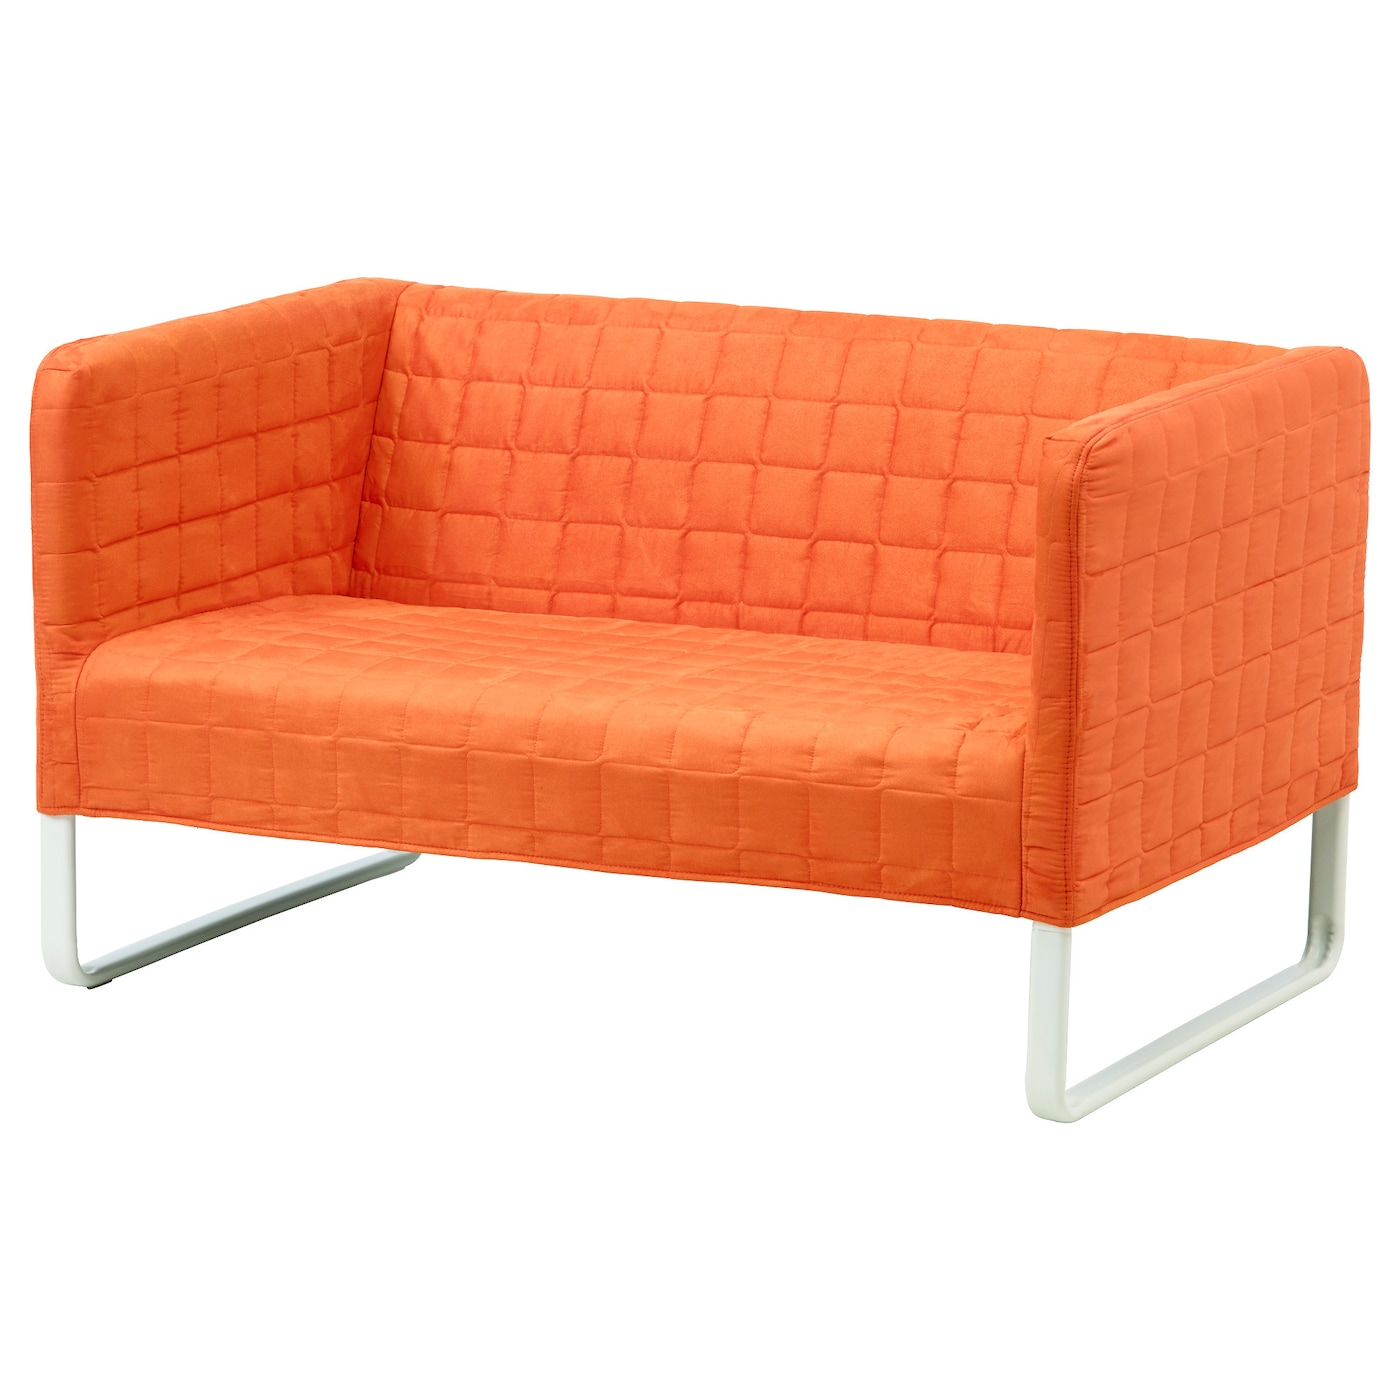 Knopparp 2 seat sofa orange ikea for Housse sofa ikea